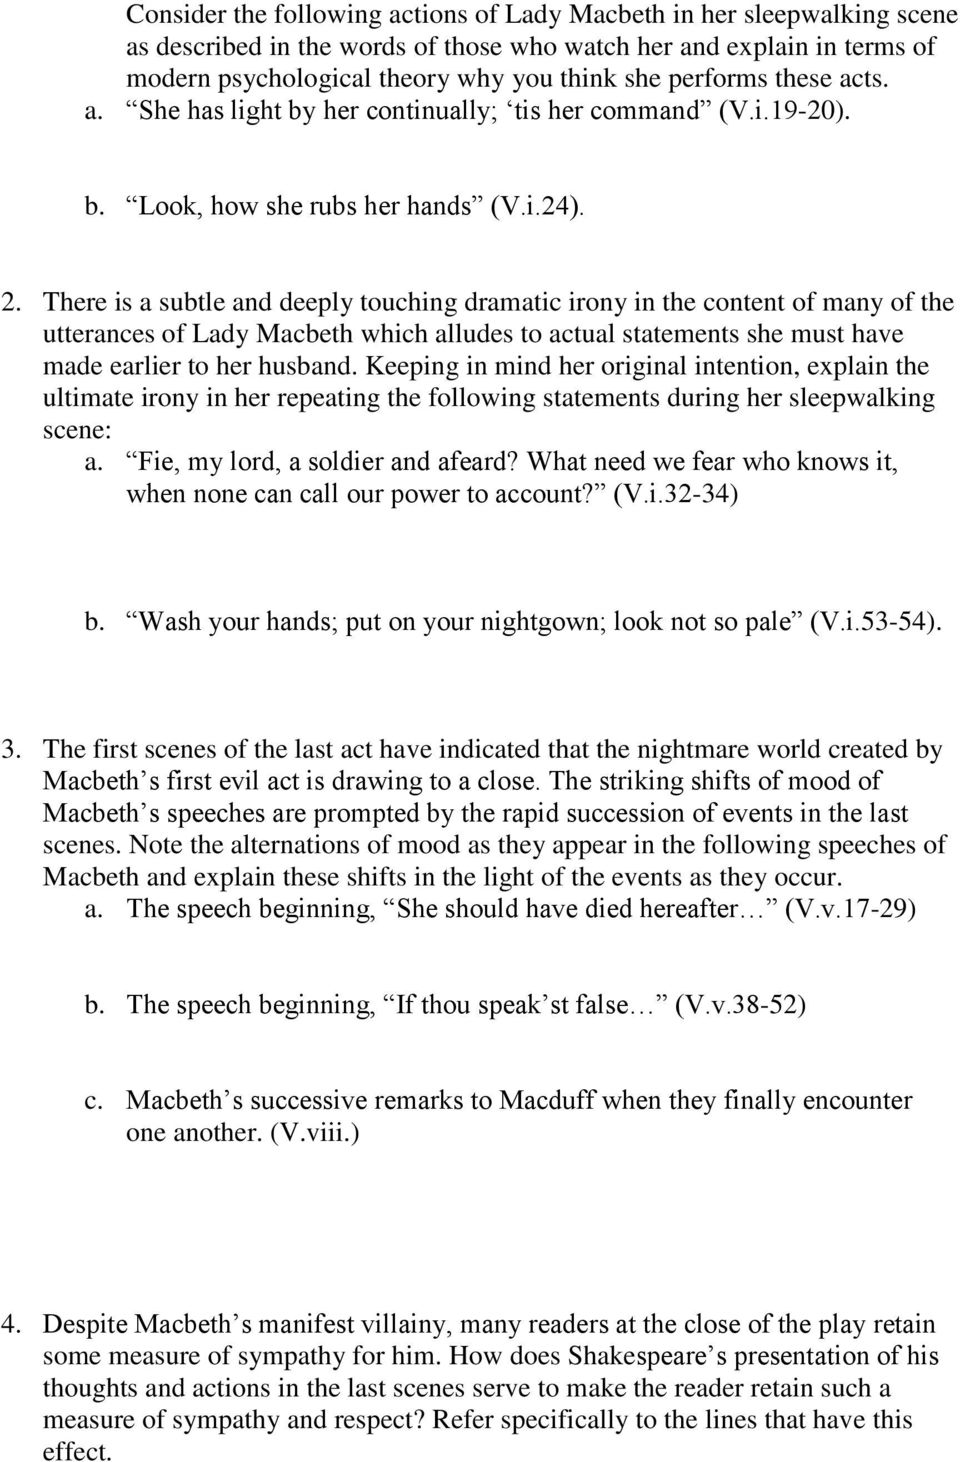 macbeth study guide questions pdf there is a subtle and deeply touching dramatic irony in the content of many of the